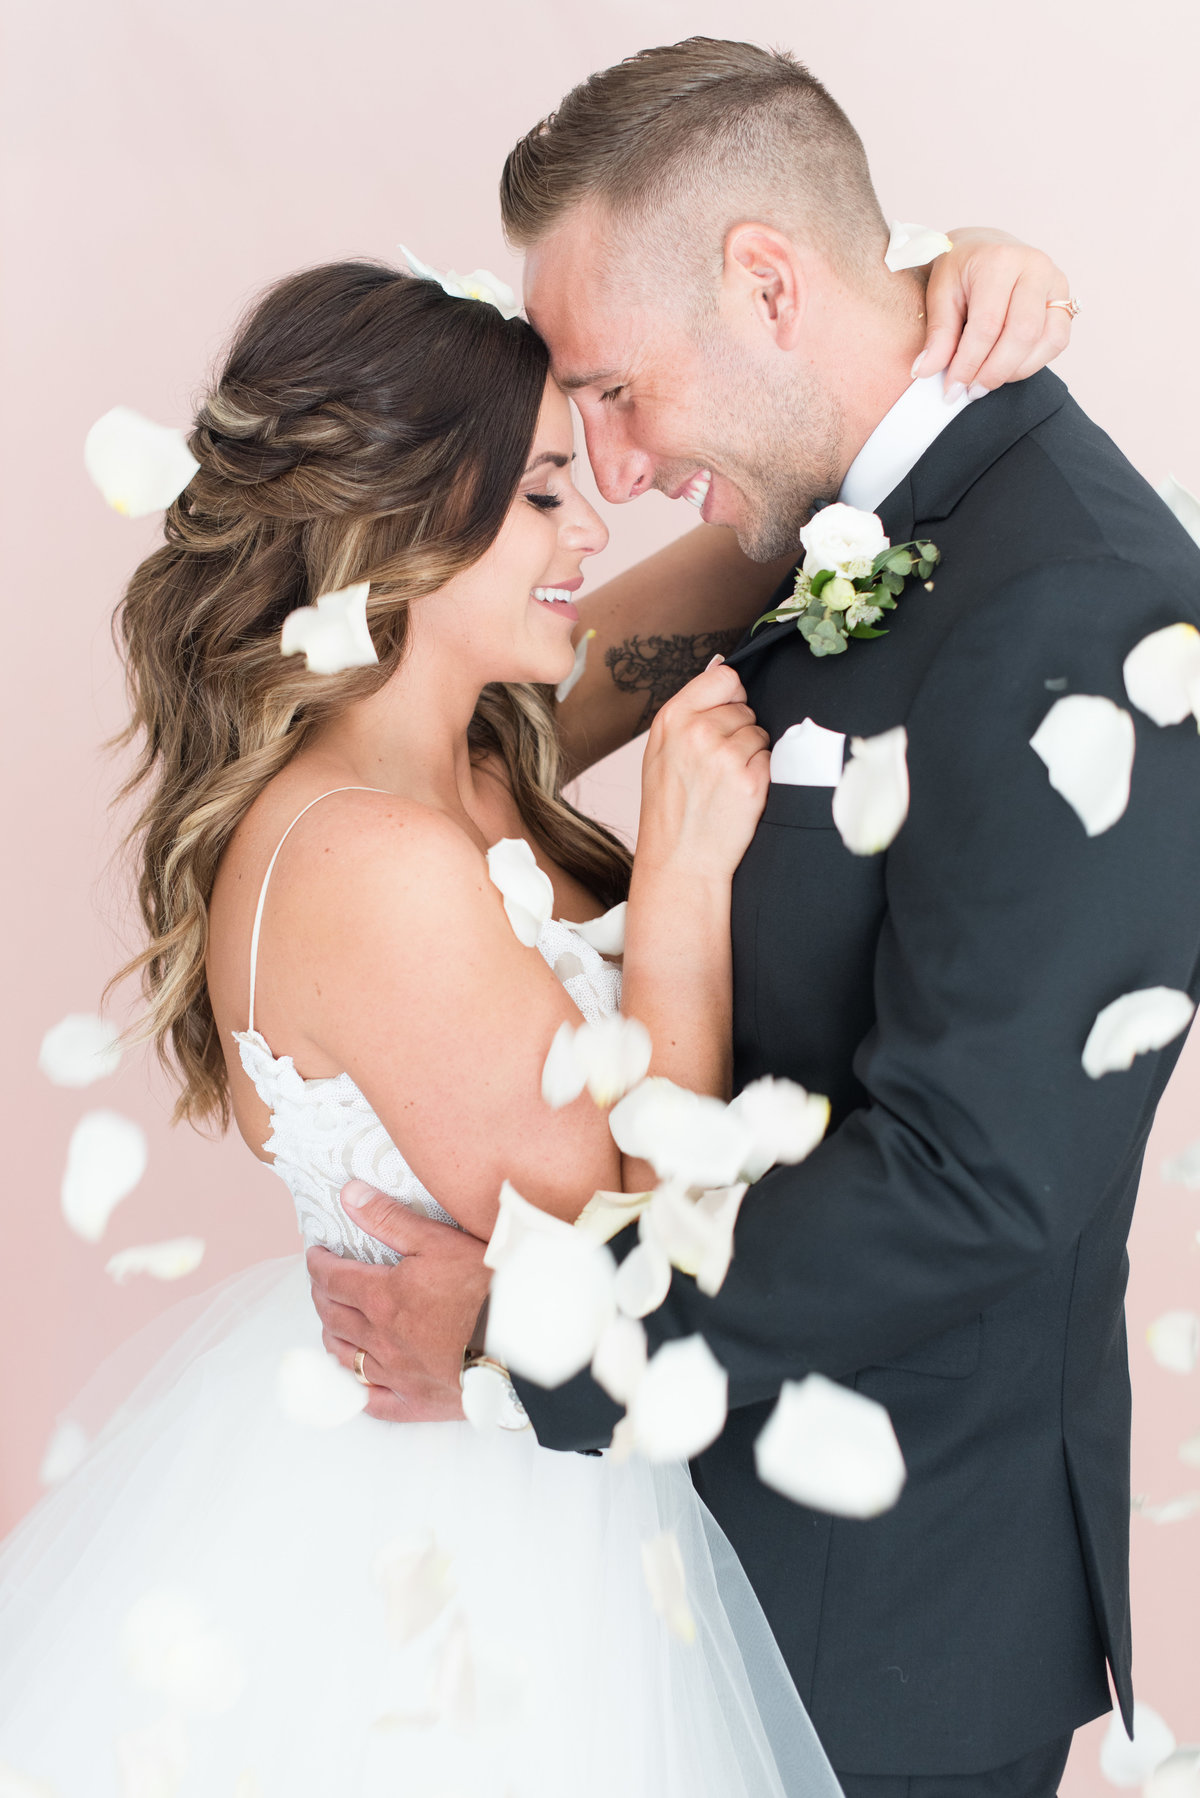 A bride and groom are showered with pink flower petals